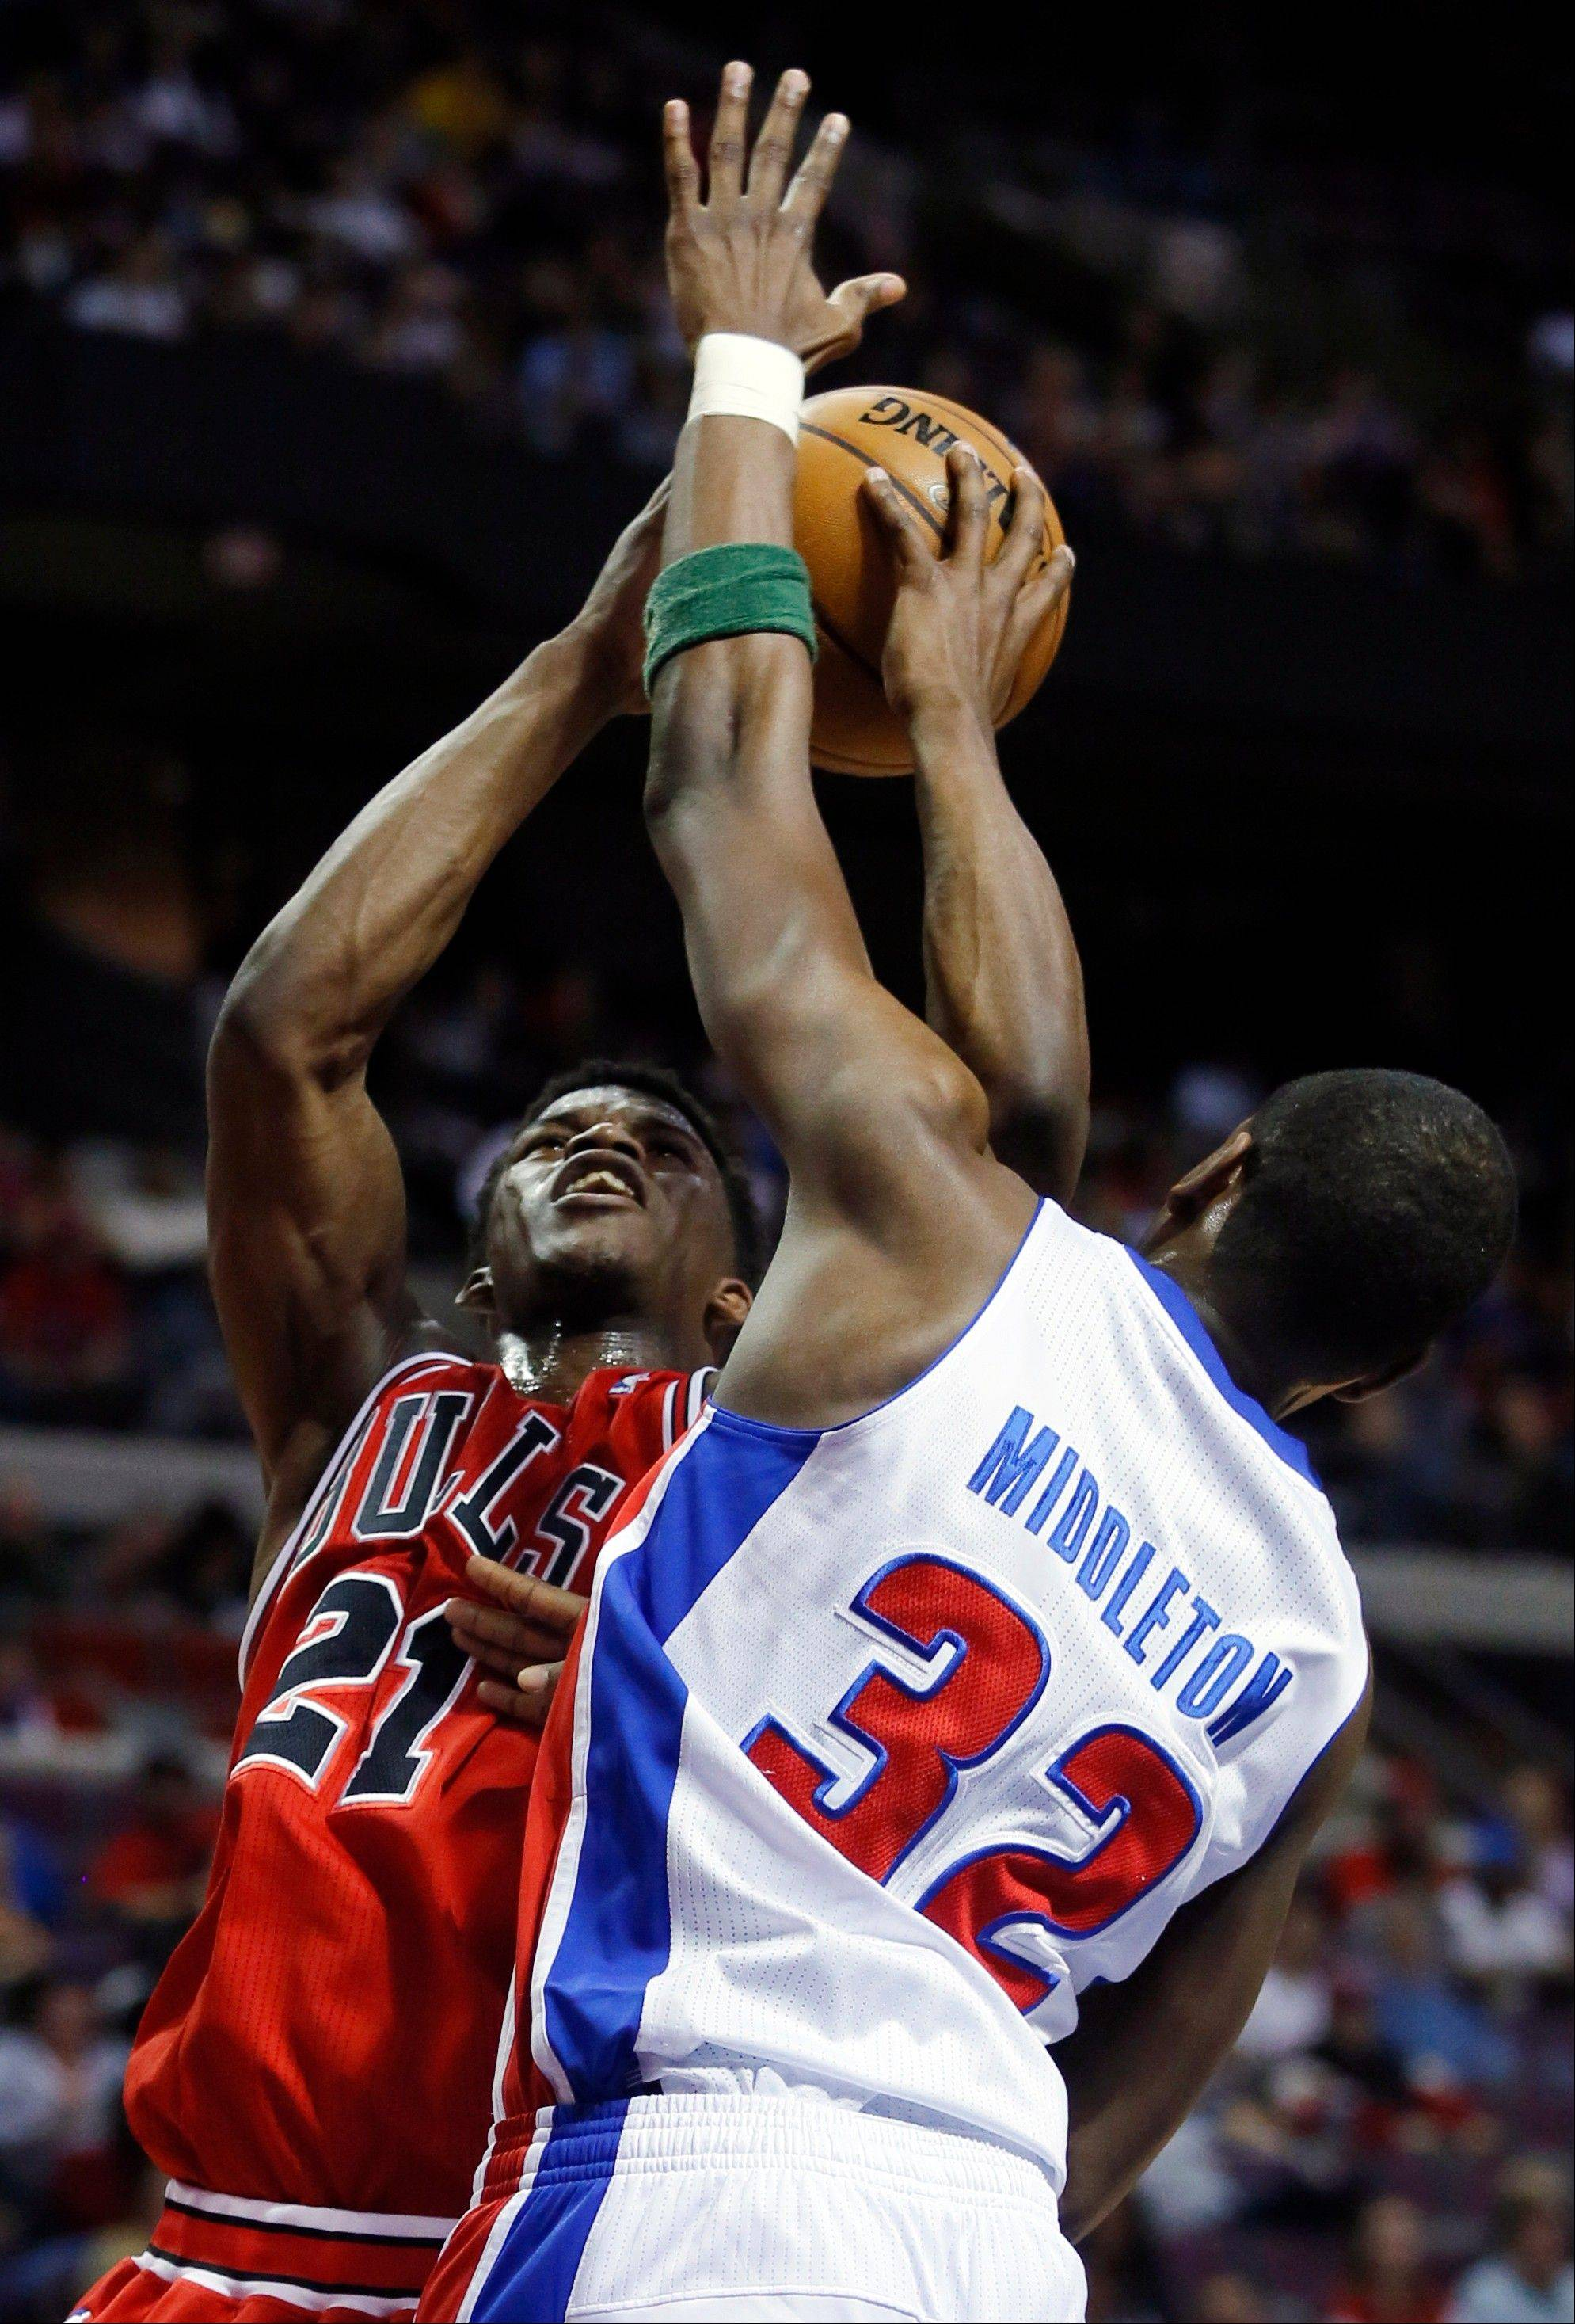 Bulls guard Jimmy Butler shoots against Pistons forward Khris Middleton on Sunday night.